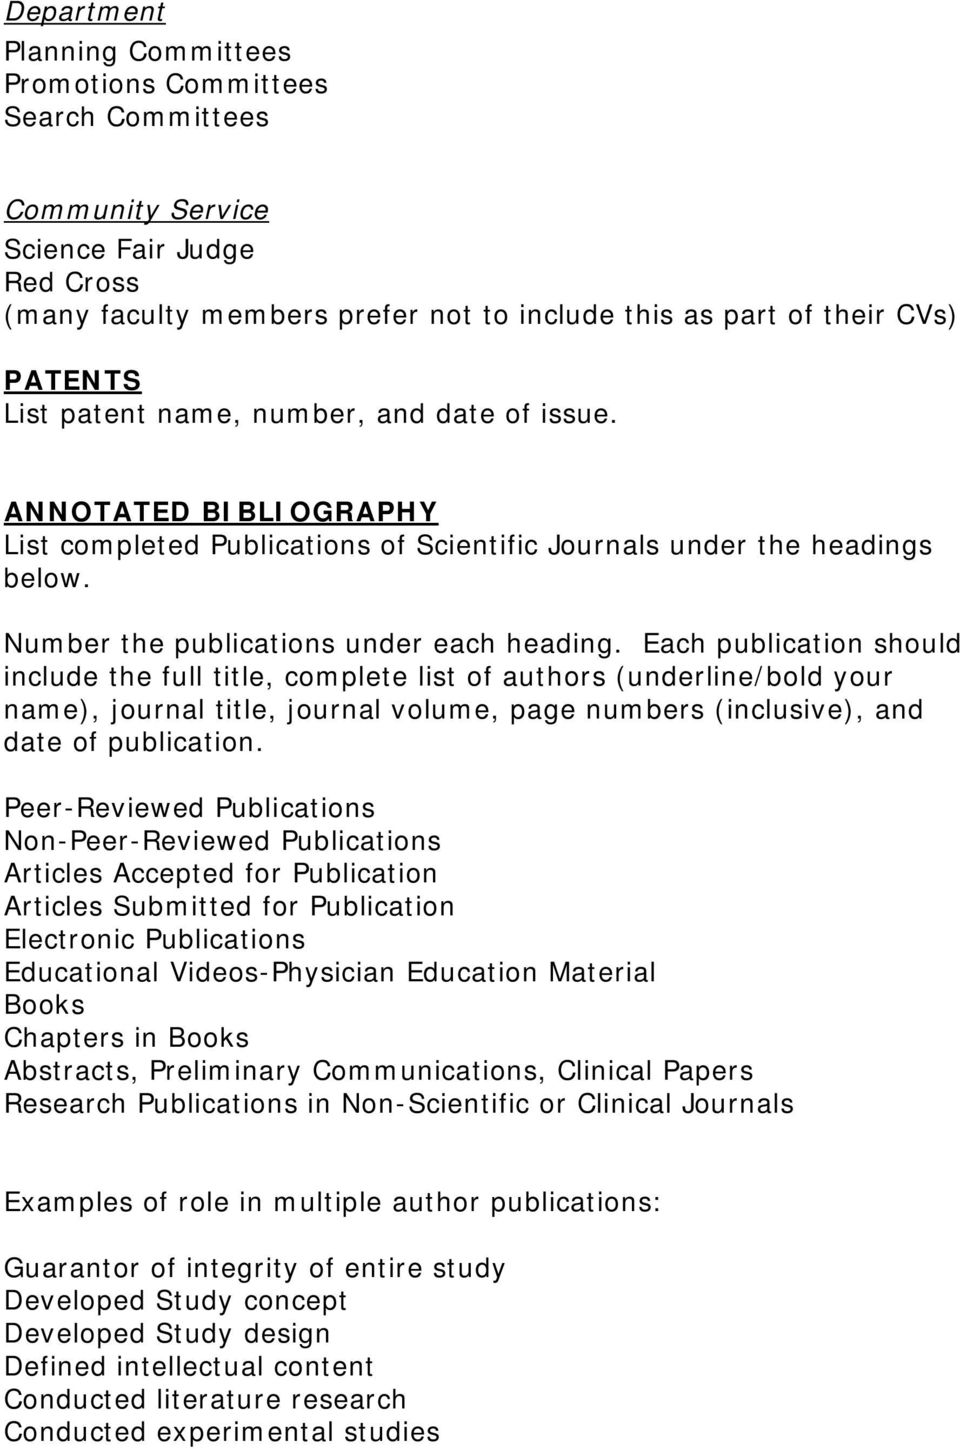 Each publication should include the full title, complete list of authors (underline/bold your name), journal title, journal volume, page numbers (inclusive), and date of publication.